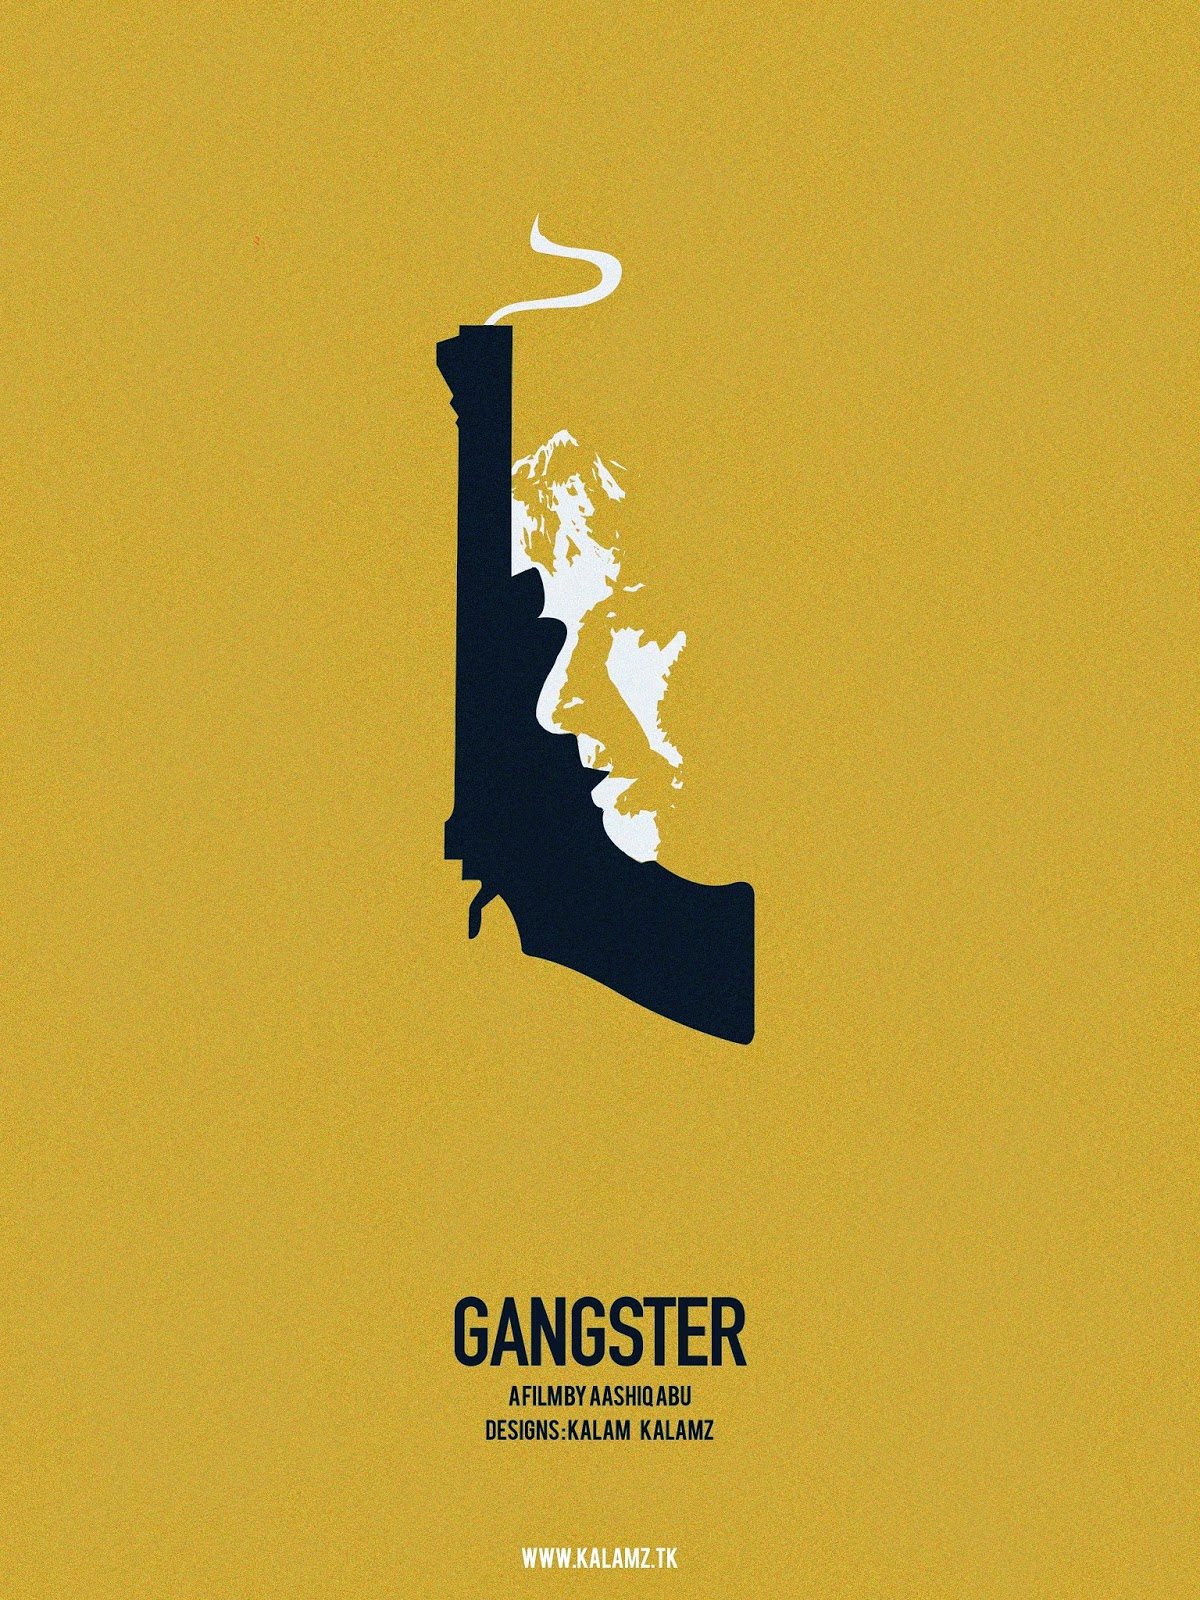 Gangster malayalam movie poster